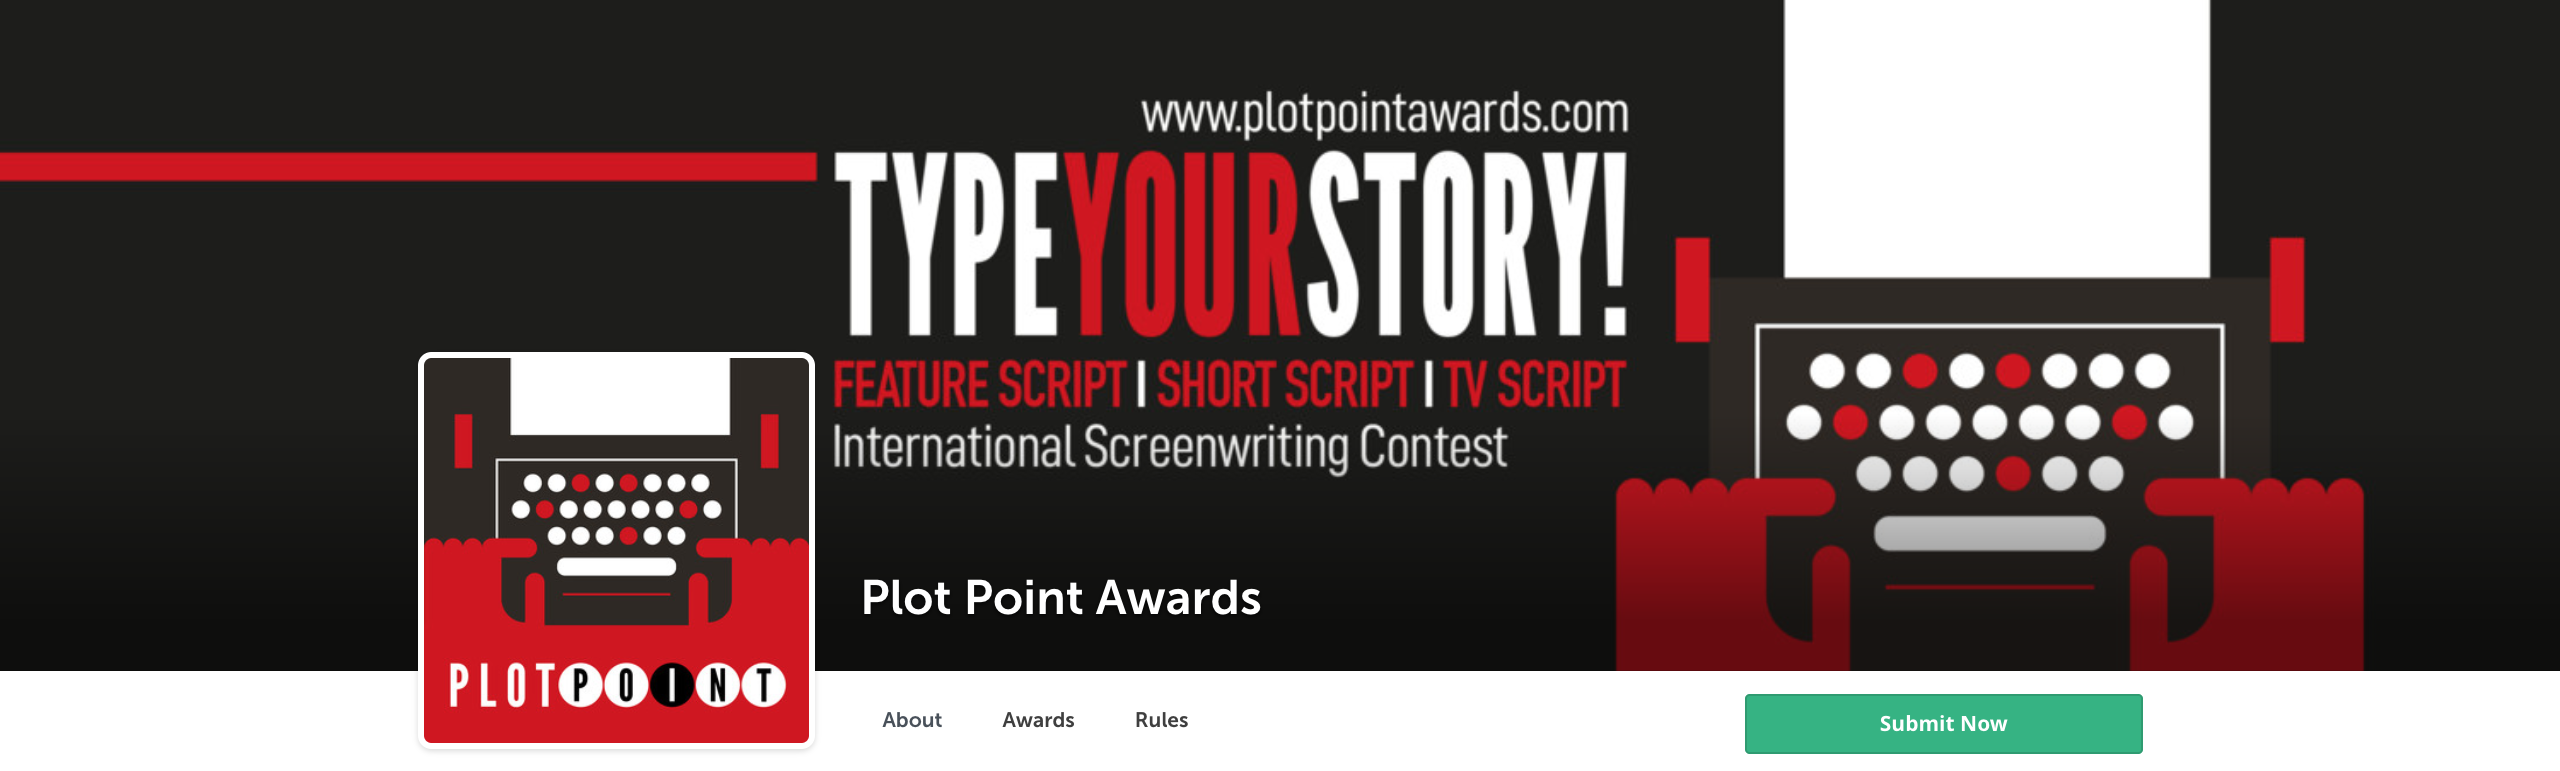 Plot Point Awards